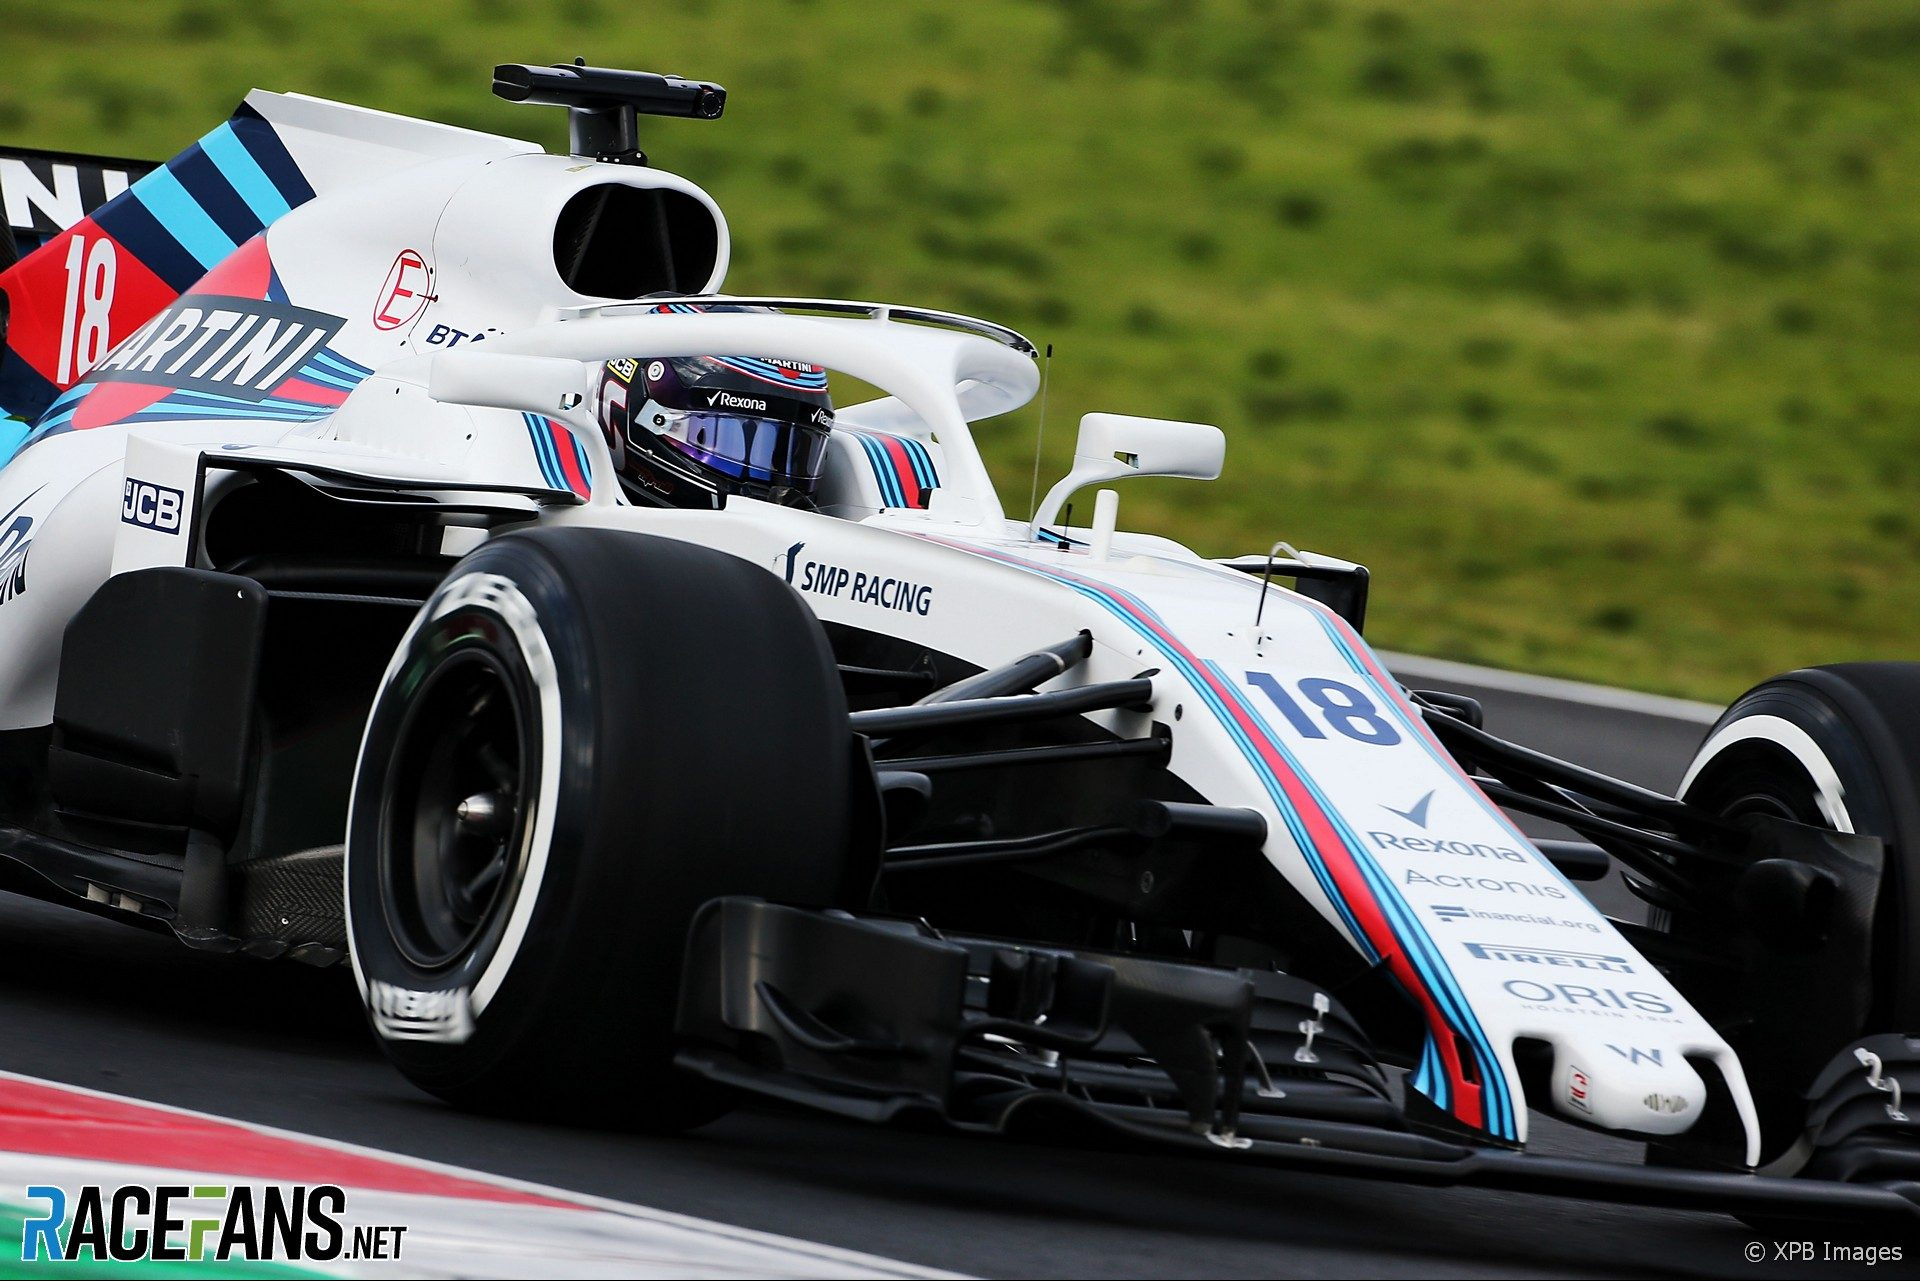 Williams knew it was in trouble on lap one in testing – Lowe